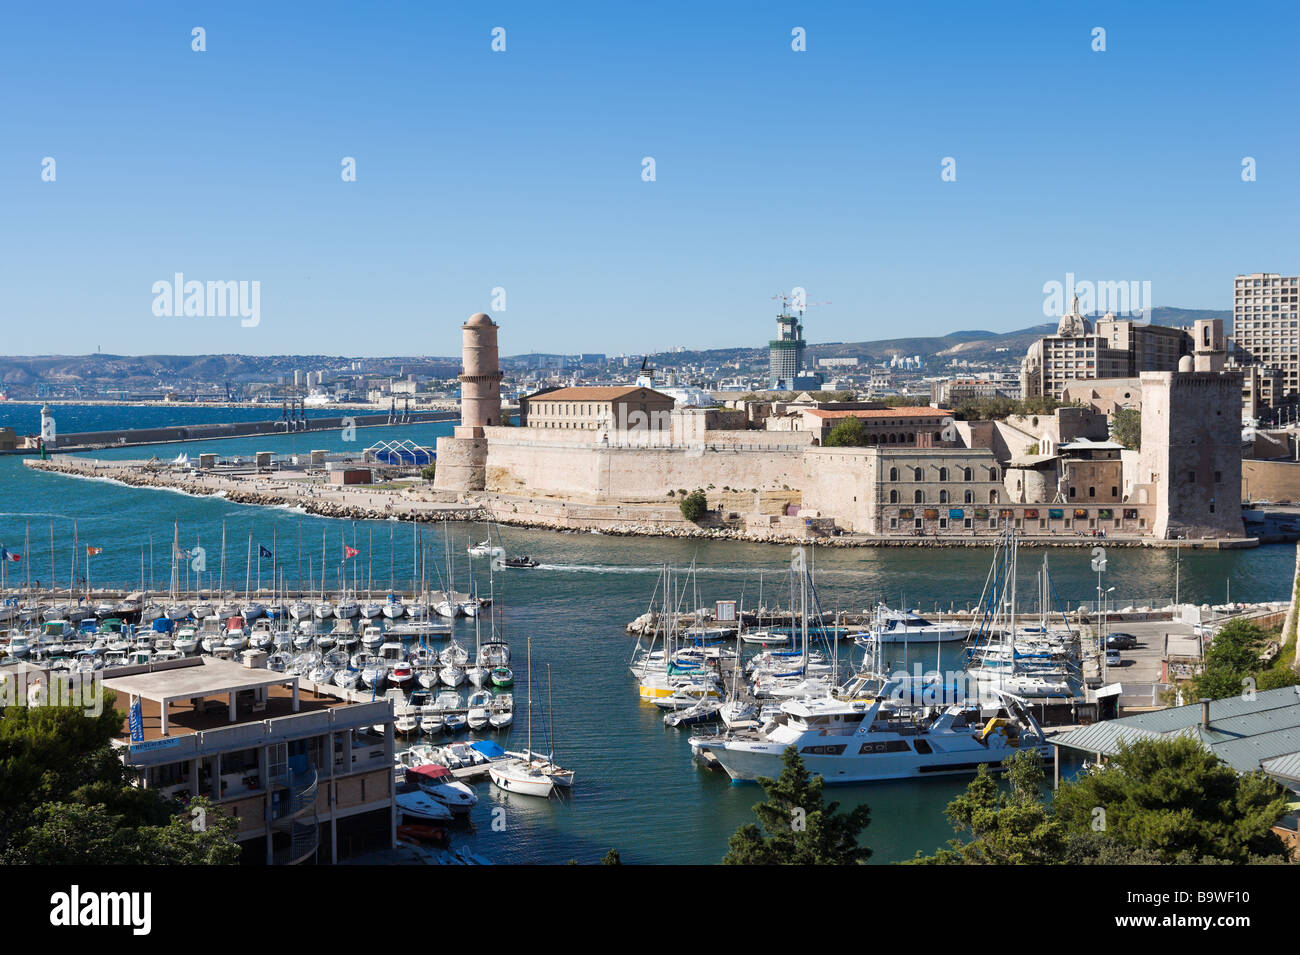 View of Fort St Jean from Fort St Nicolas, the Vieux Port, Marseille, Cote d'Azur, France - Stock Image